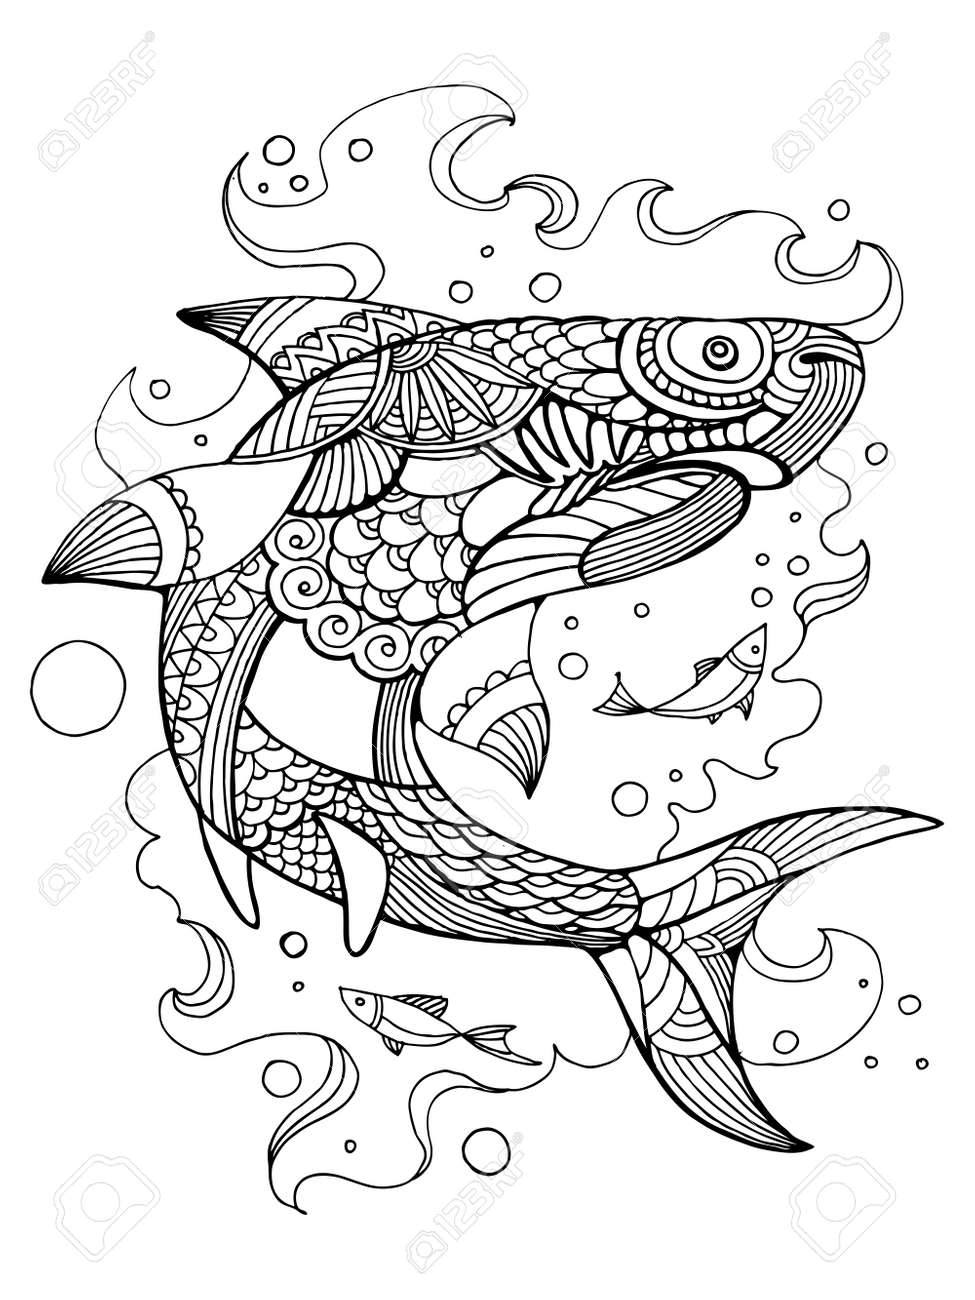 Shark Coloring Book For Adults Vector Illustration. Anti-stress ...